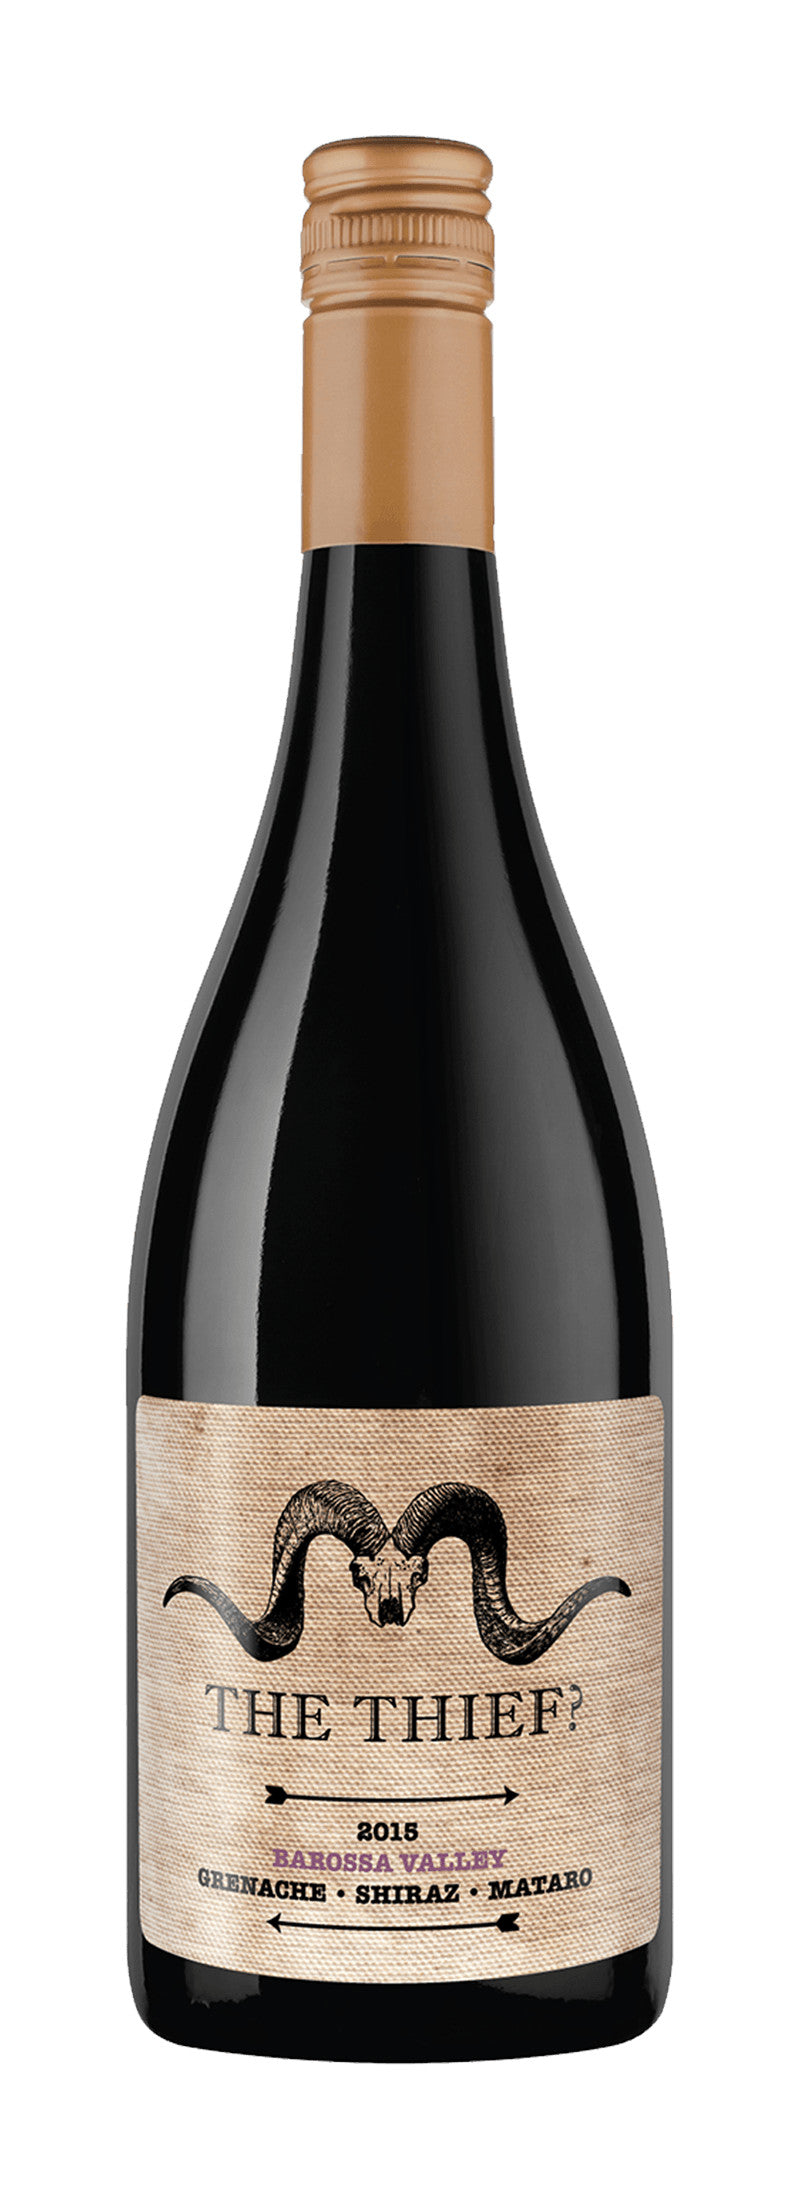 The Thief Barossa Valley Grenache Shiraz Mataro (GSM) 2017 / 6 pack ( Single bottle price is $33)